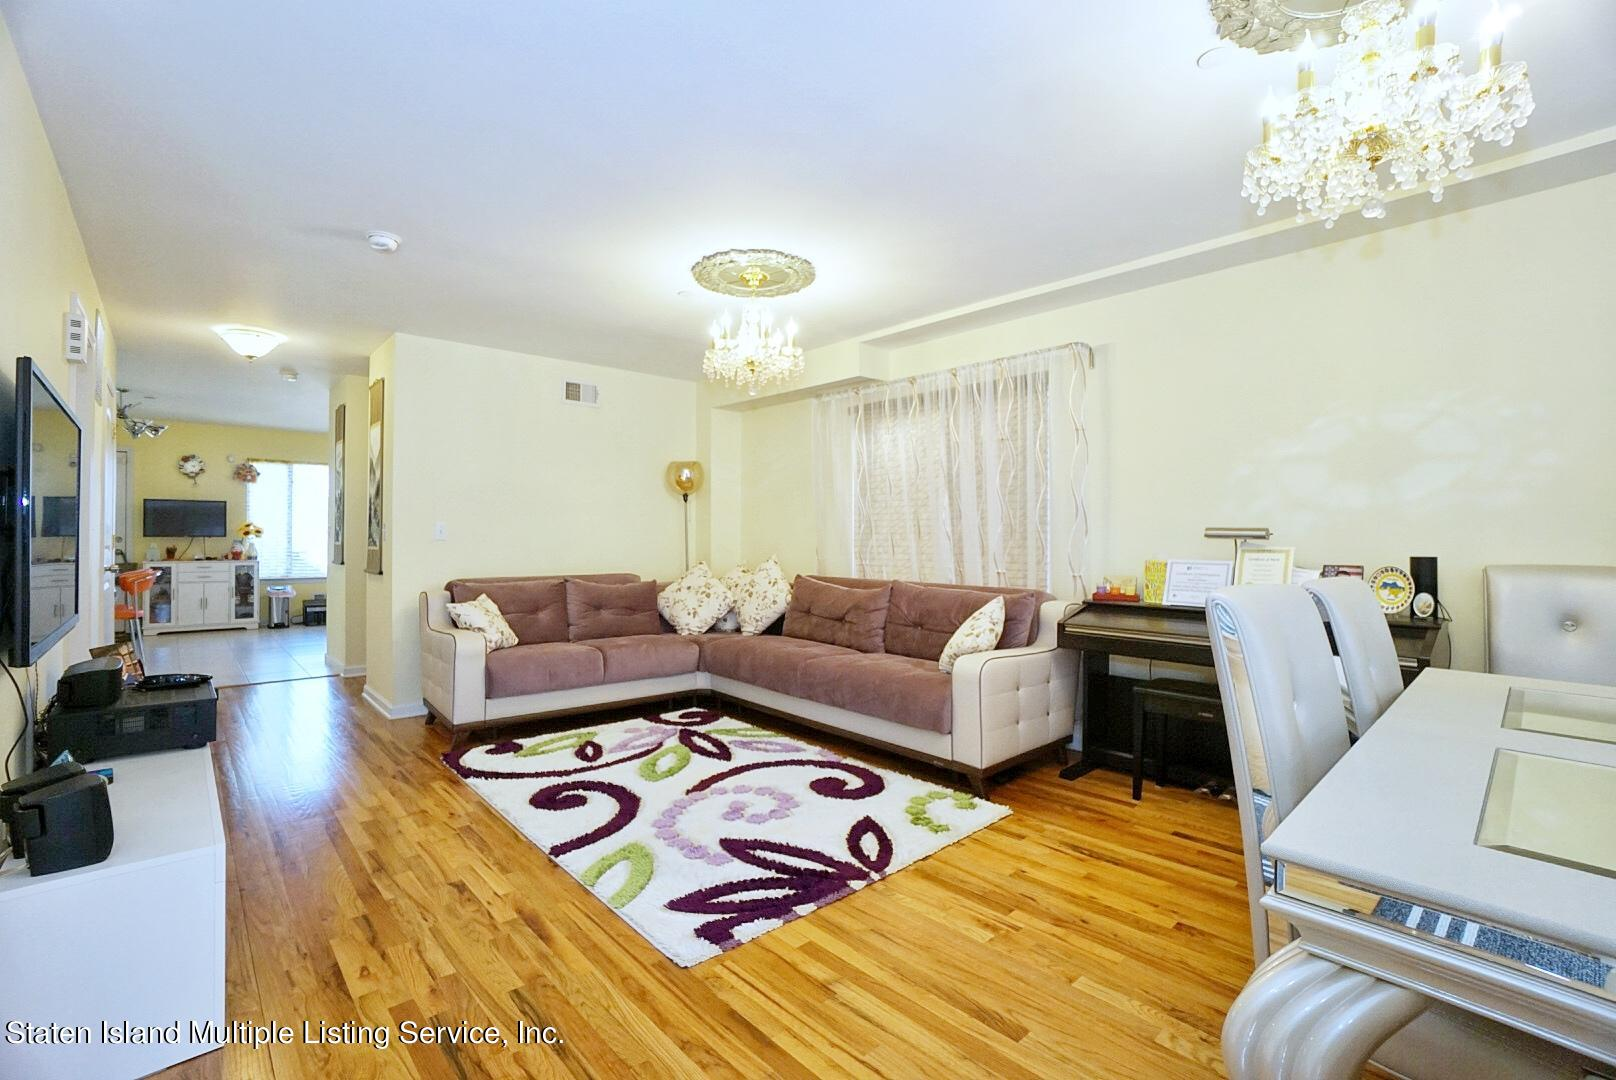 Single Family - Detached 171 Benziger Avenue  Staten Island, NY 10301, MLS-1145235-3